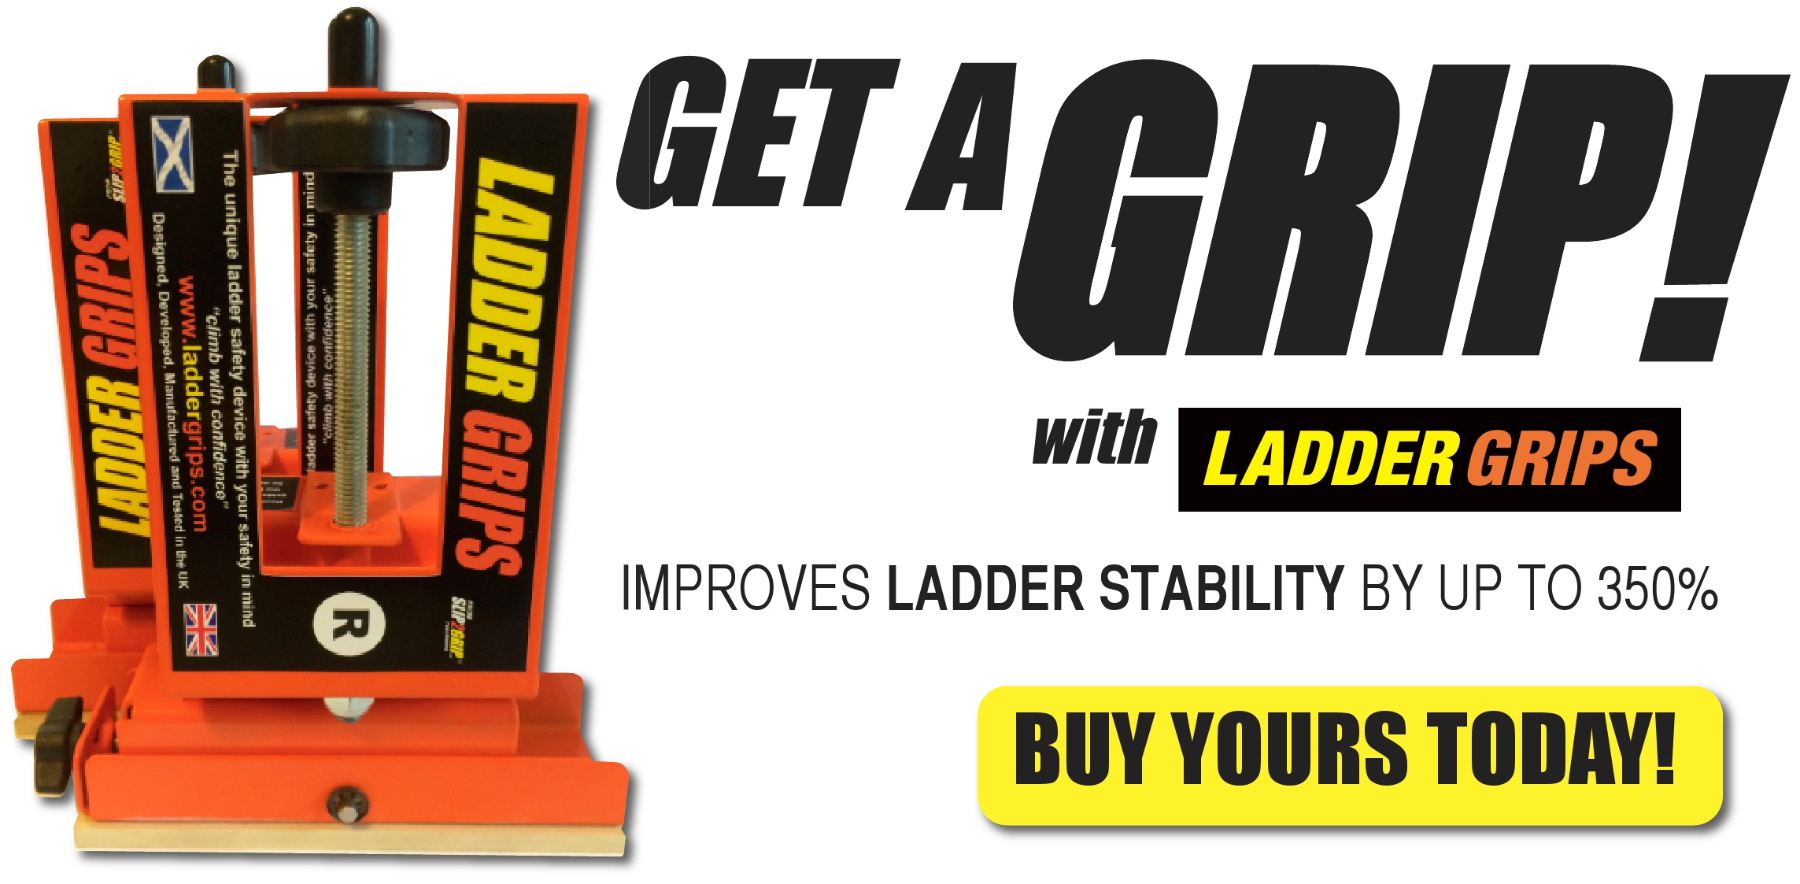 Ladder safety devices in the United States Ladder Grips